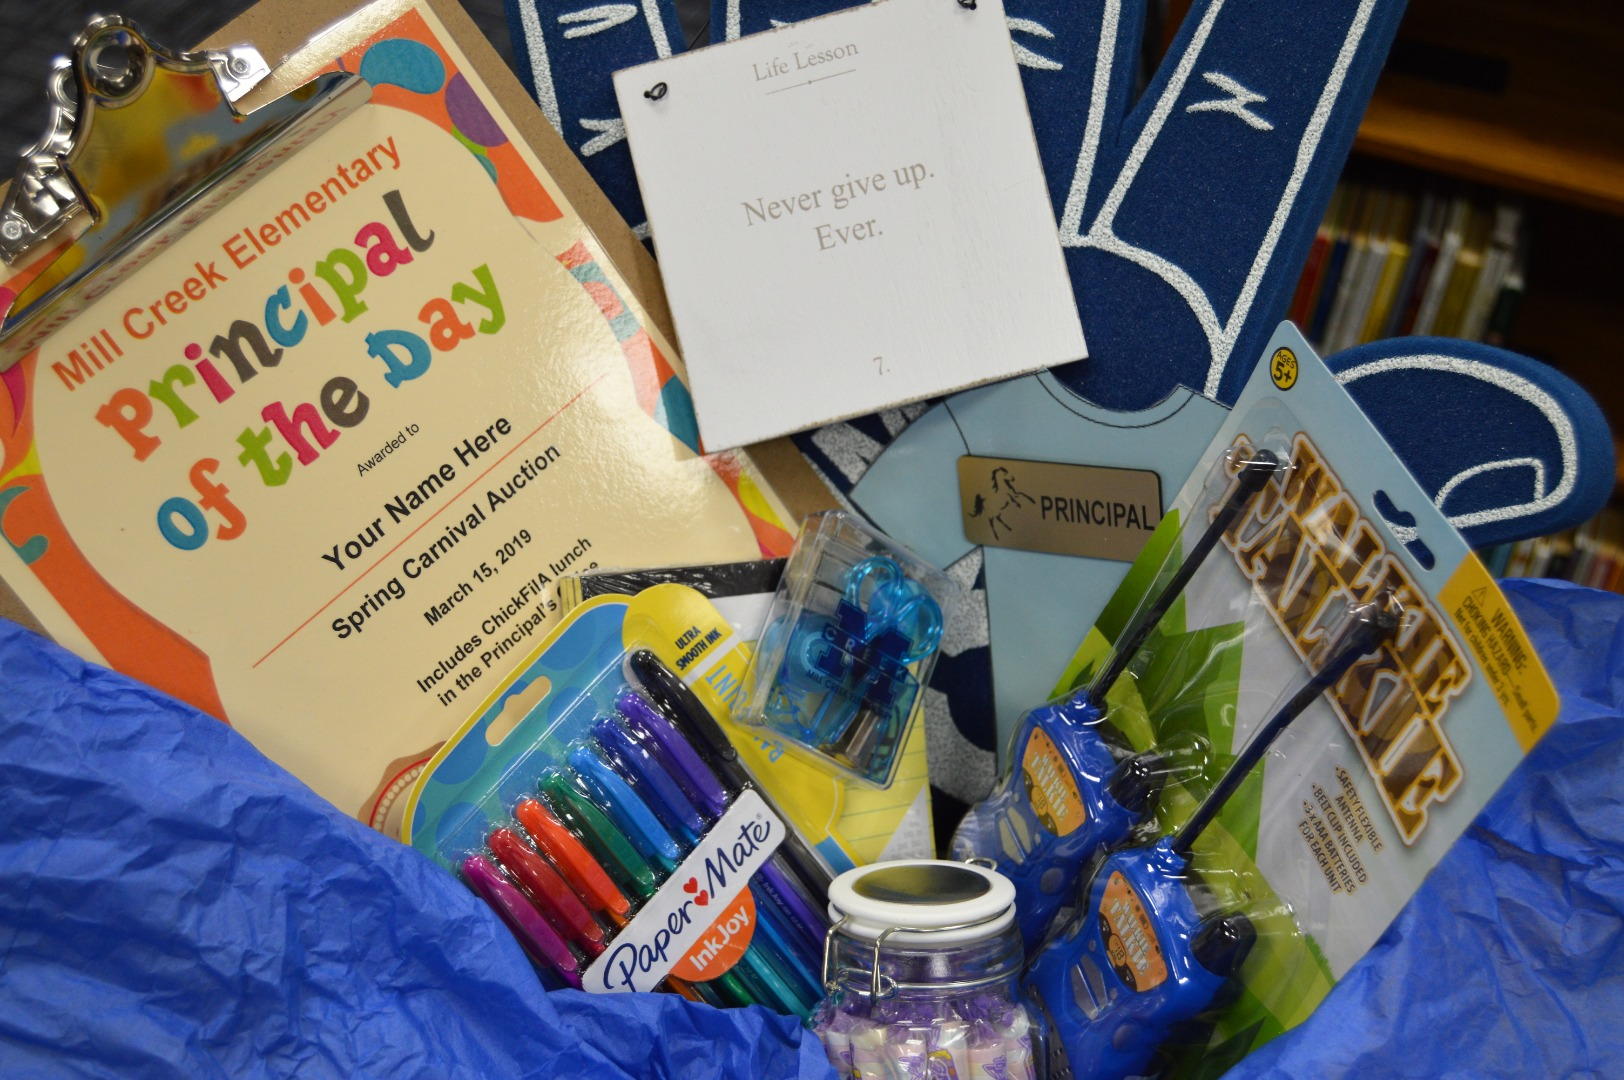 Principal for a day basket